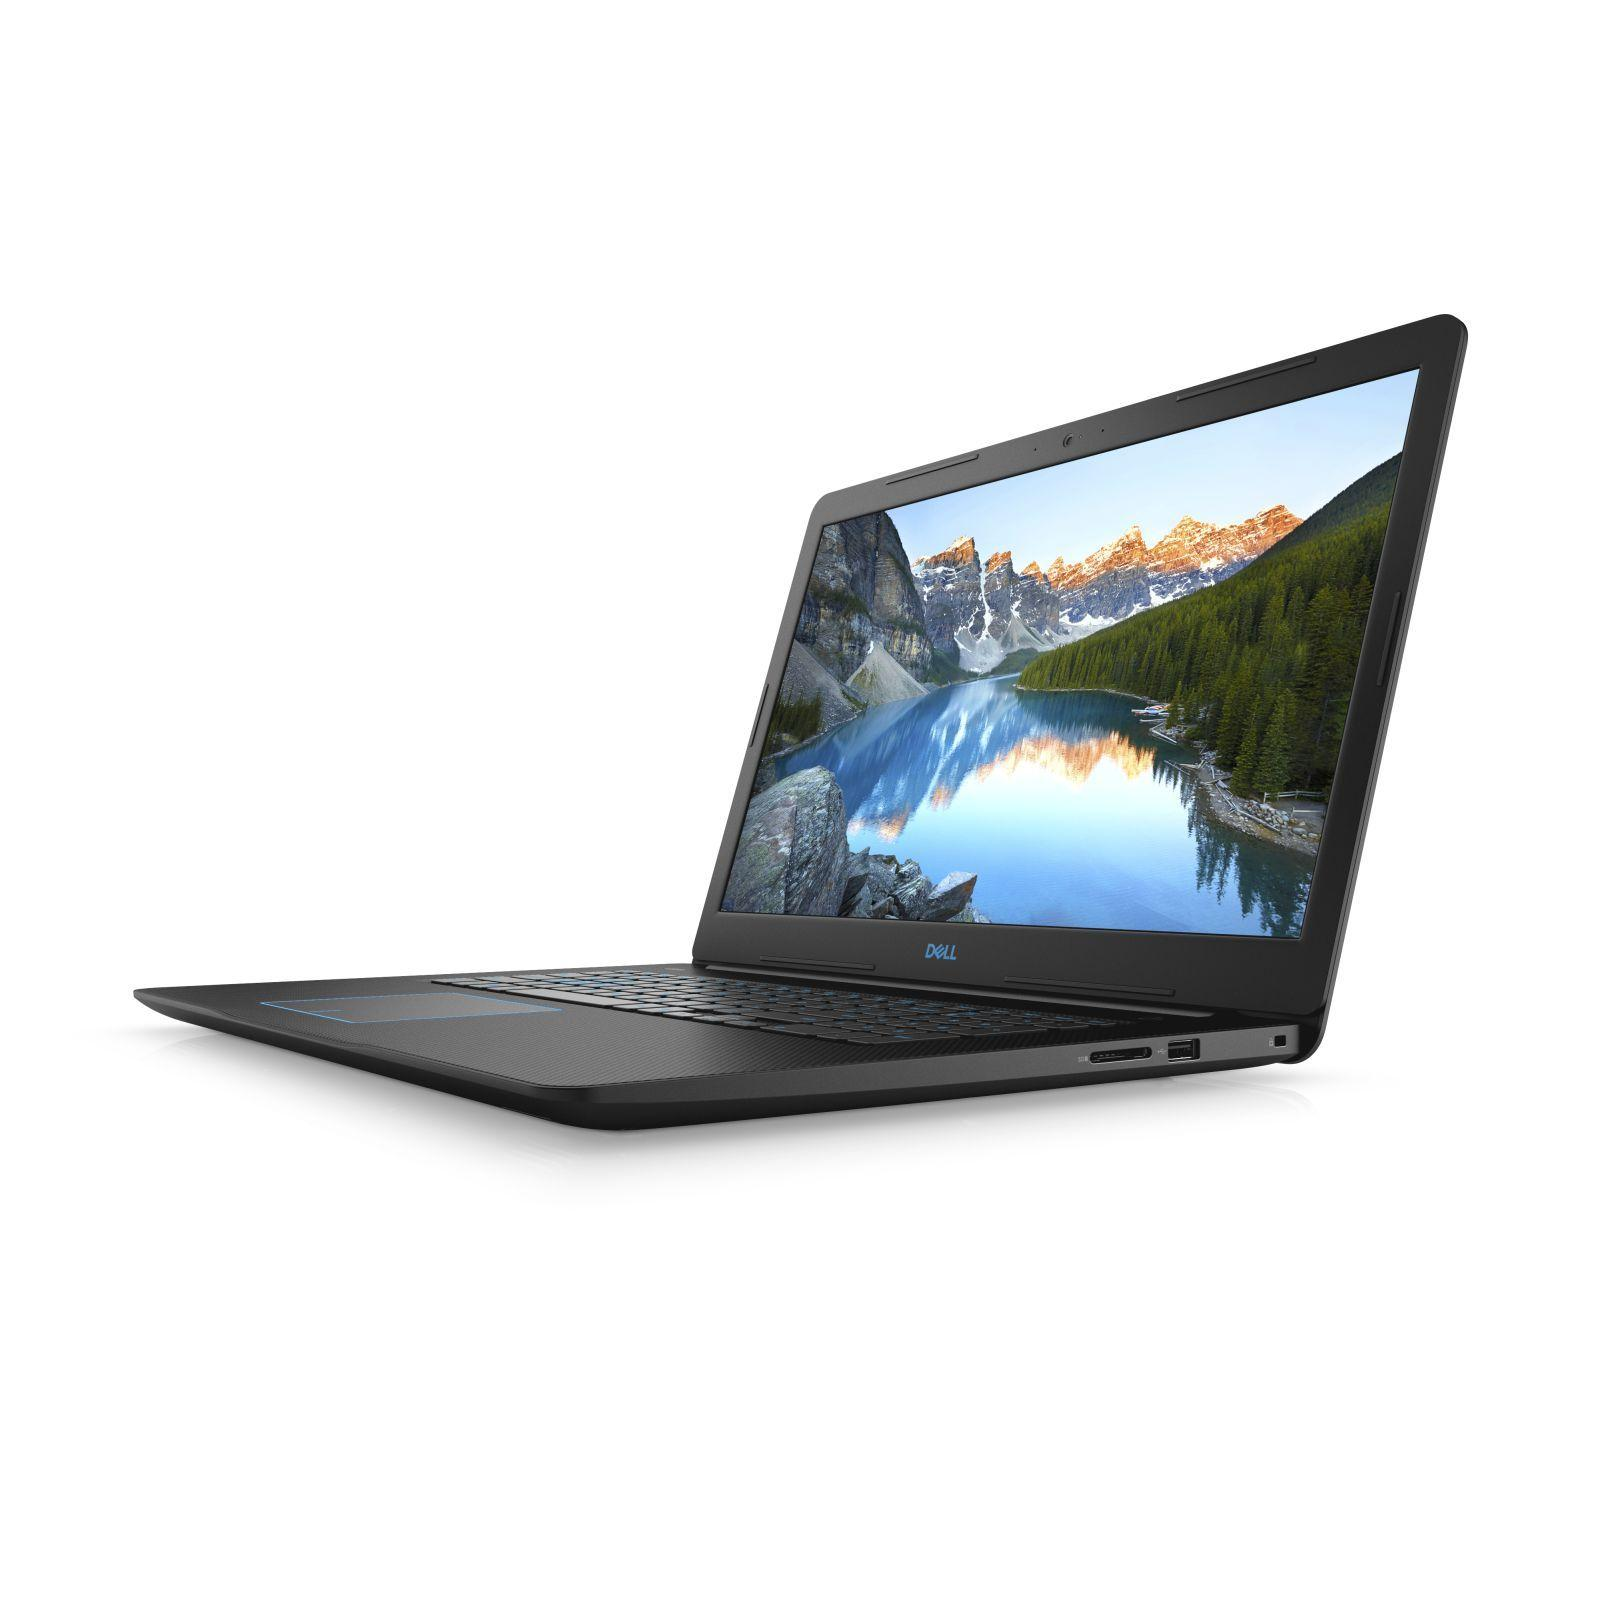 Brand New DELL Gaming Laptop G3-875814GL-W10-BLK 8thGen 15.6 IN INTEL CORE I7-8750H 8GB 1TB 128GB SSD WIN 10